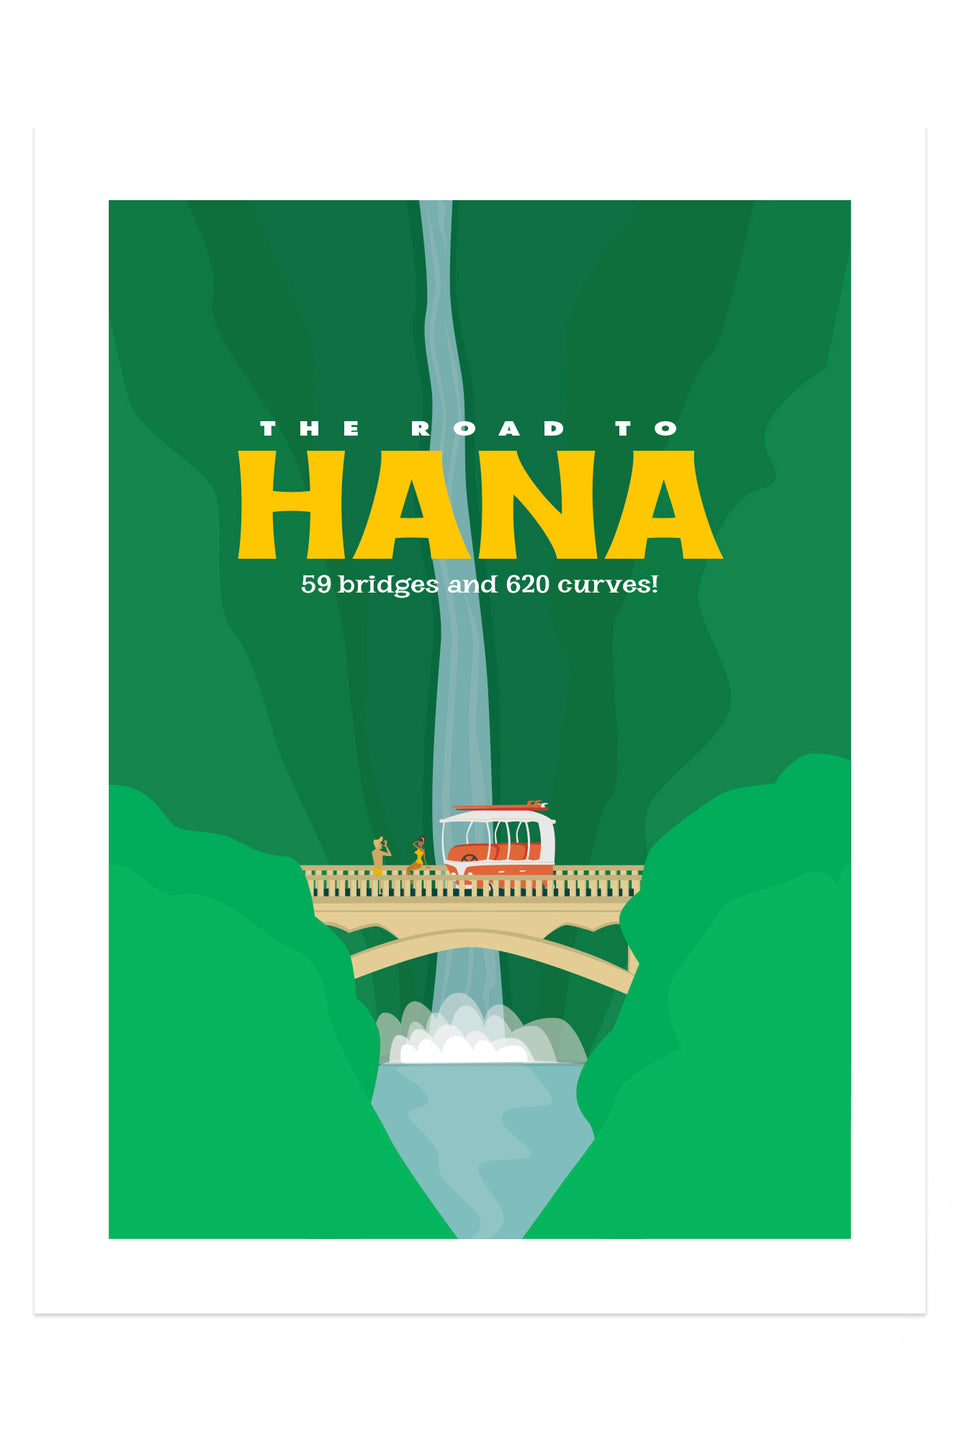 Road to Hana! (Retro Hawai'i Travel Poster)